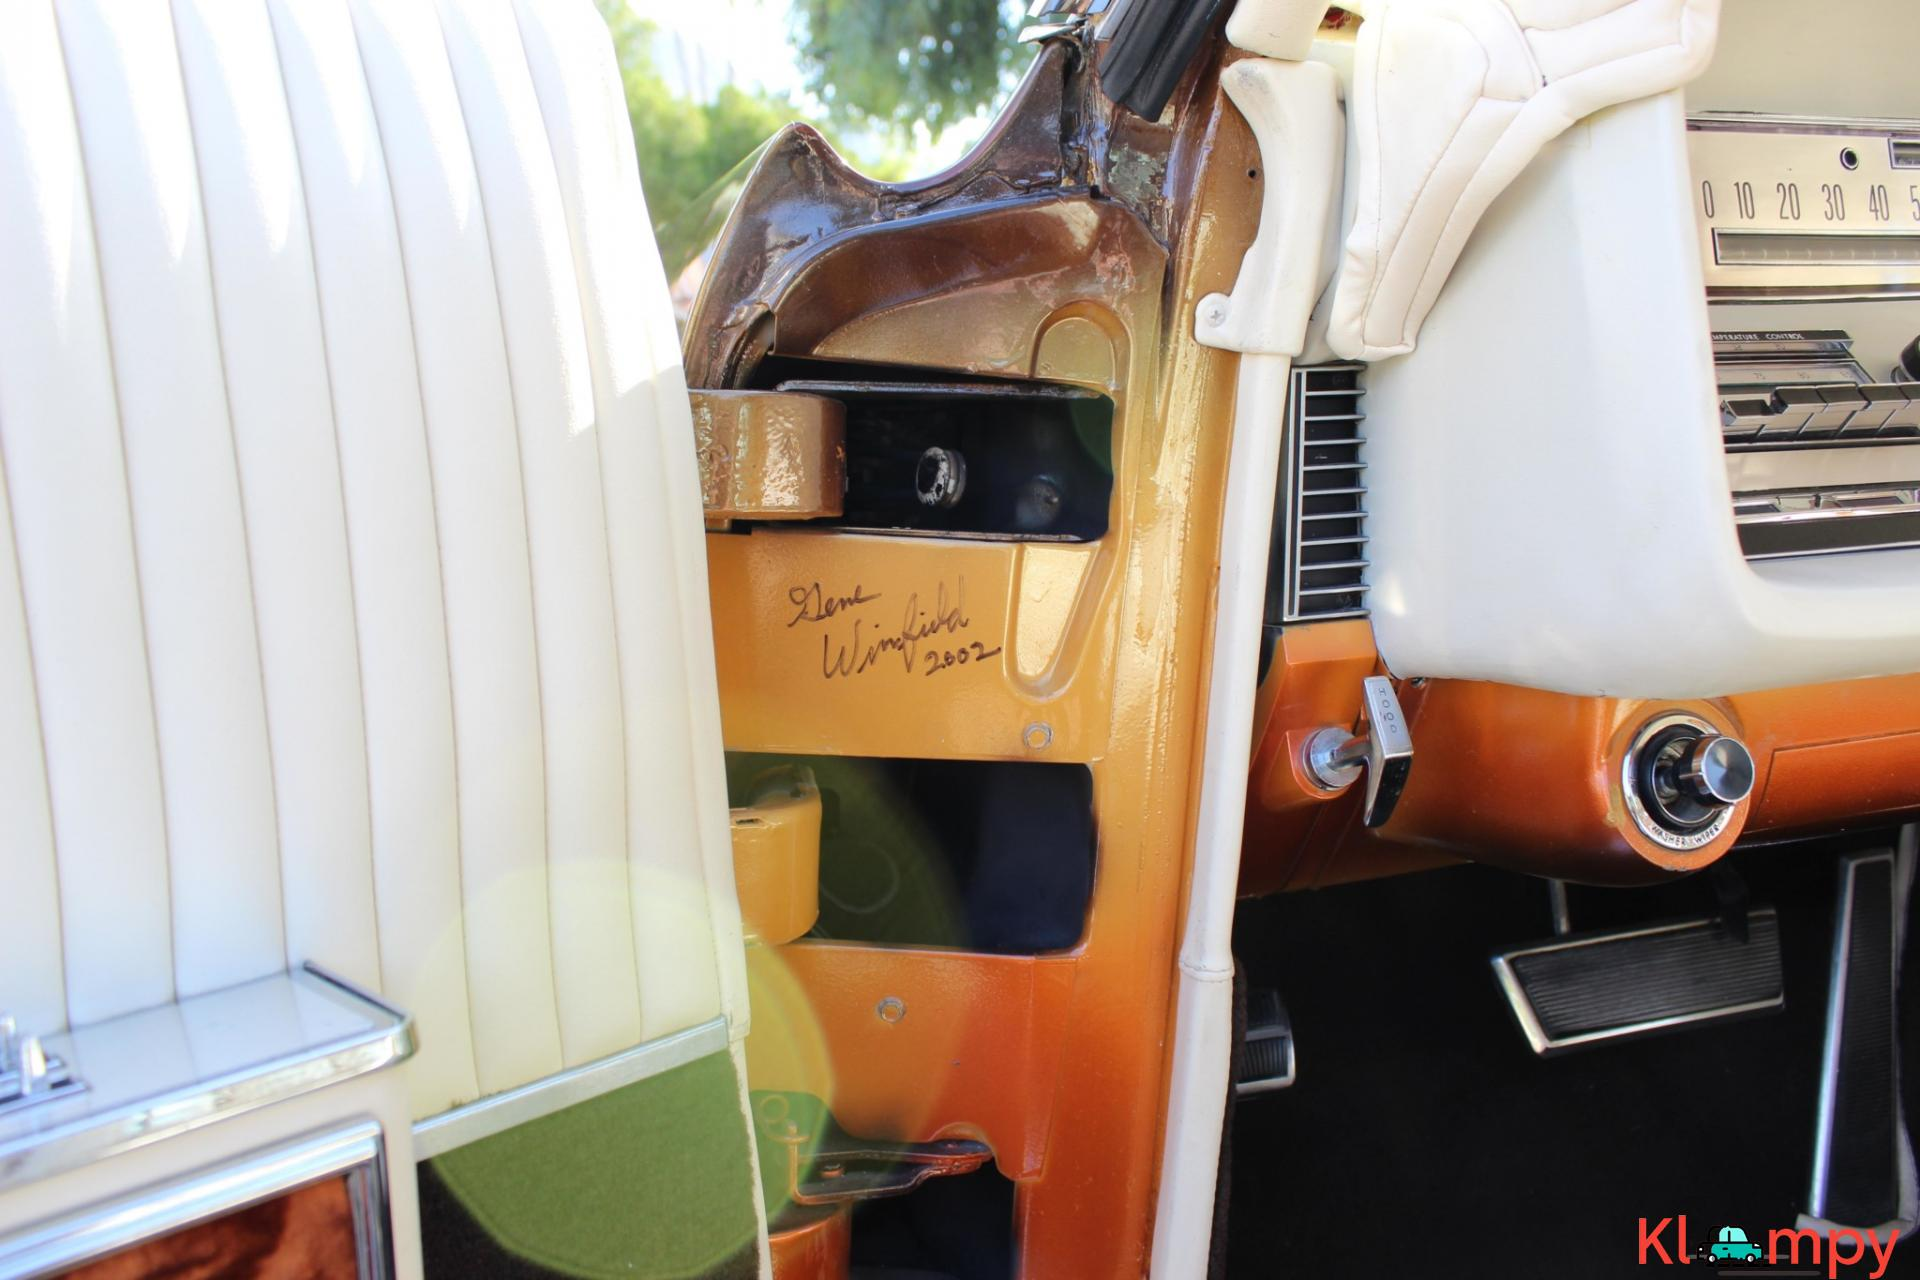 1967 Lincoln Continental Custom Two-Door Body - 14/15